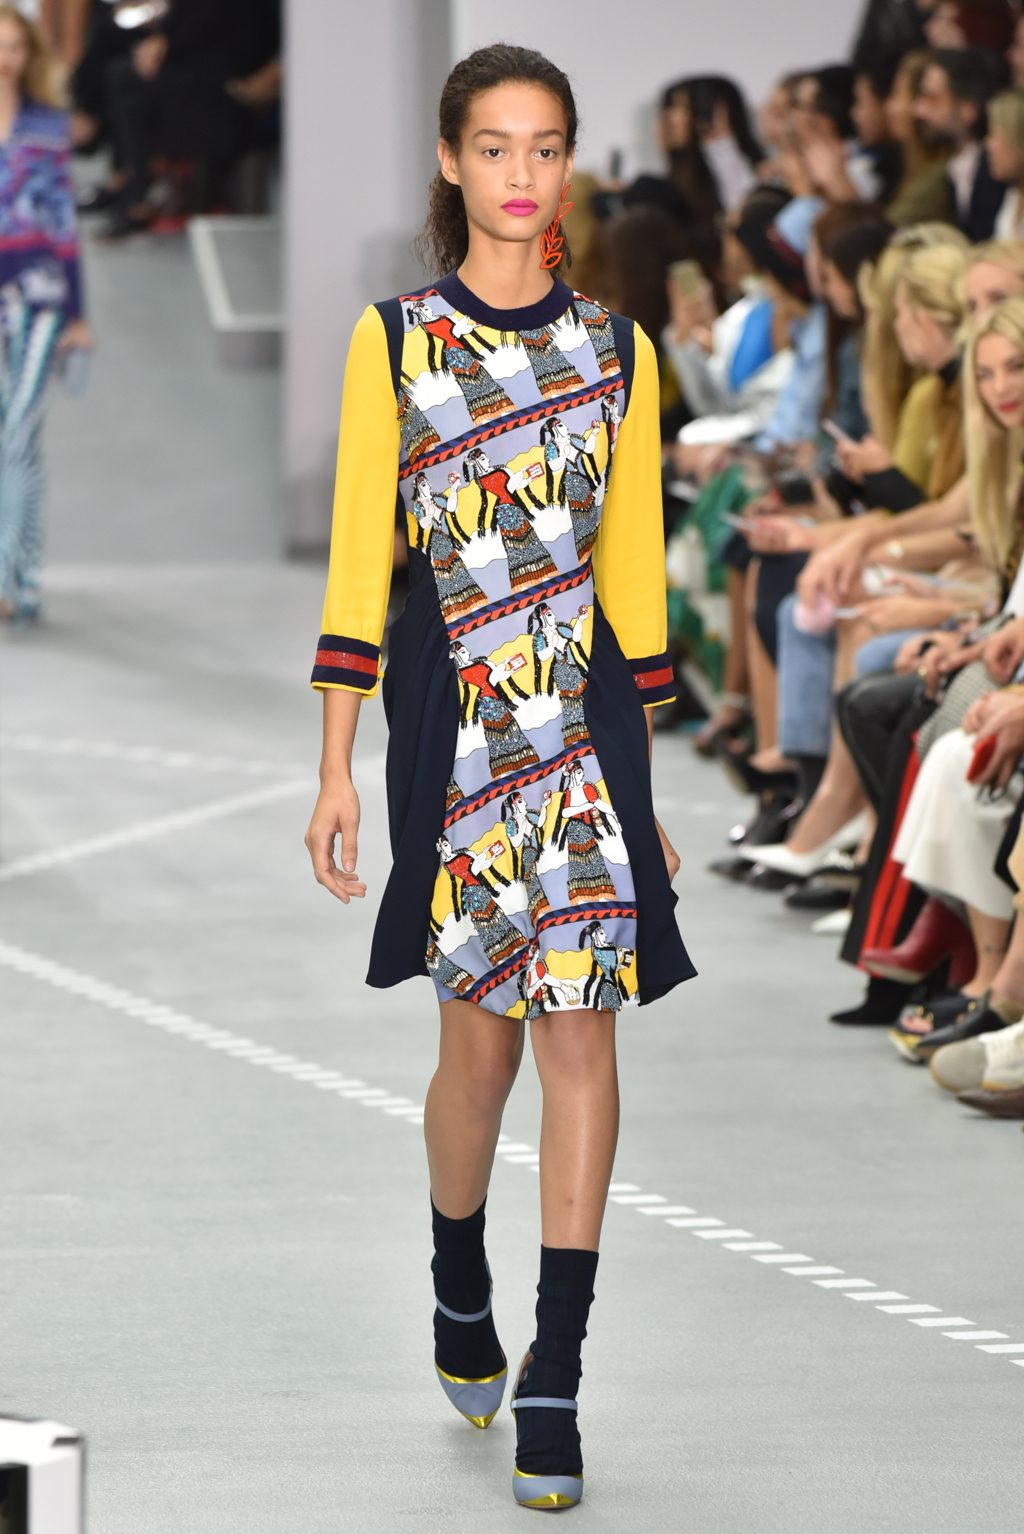 LFW-SS17-Mary-Katrantzou-Krisztian-Pinter-the-upcoming-6-1024x1534